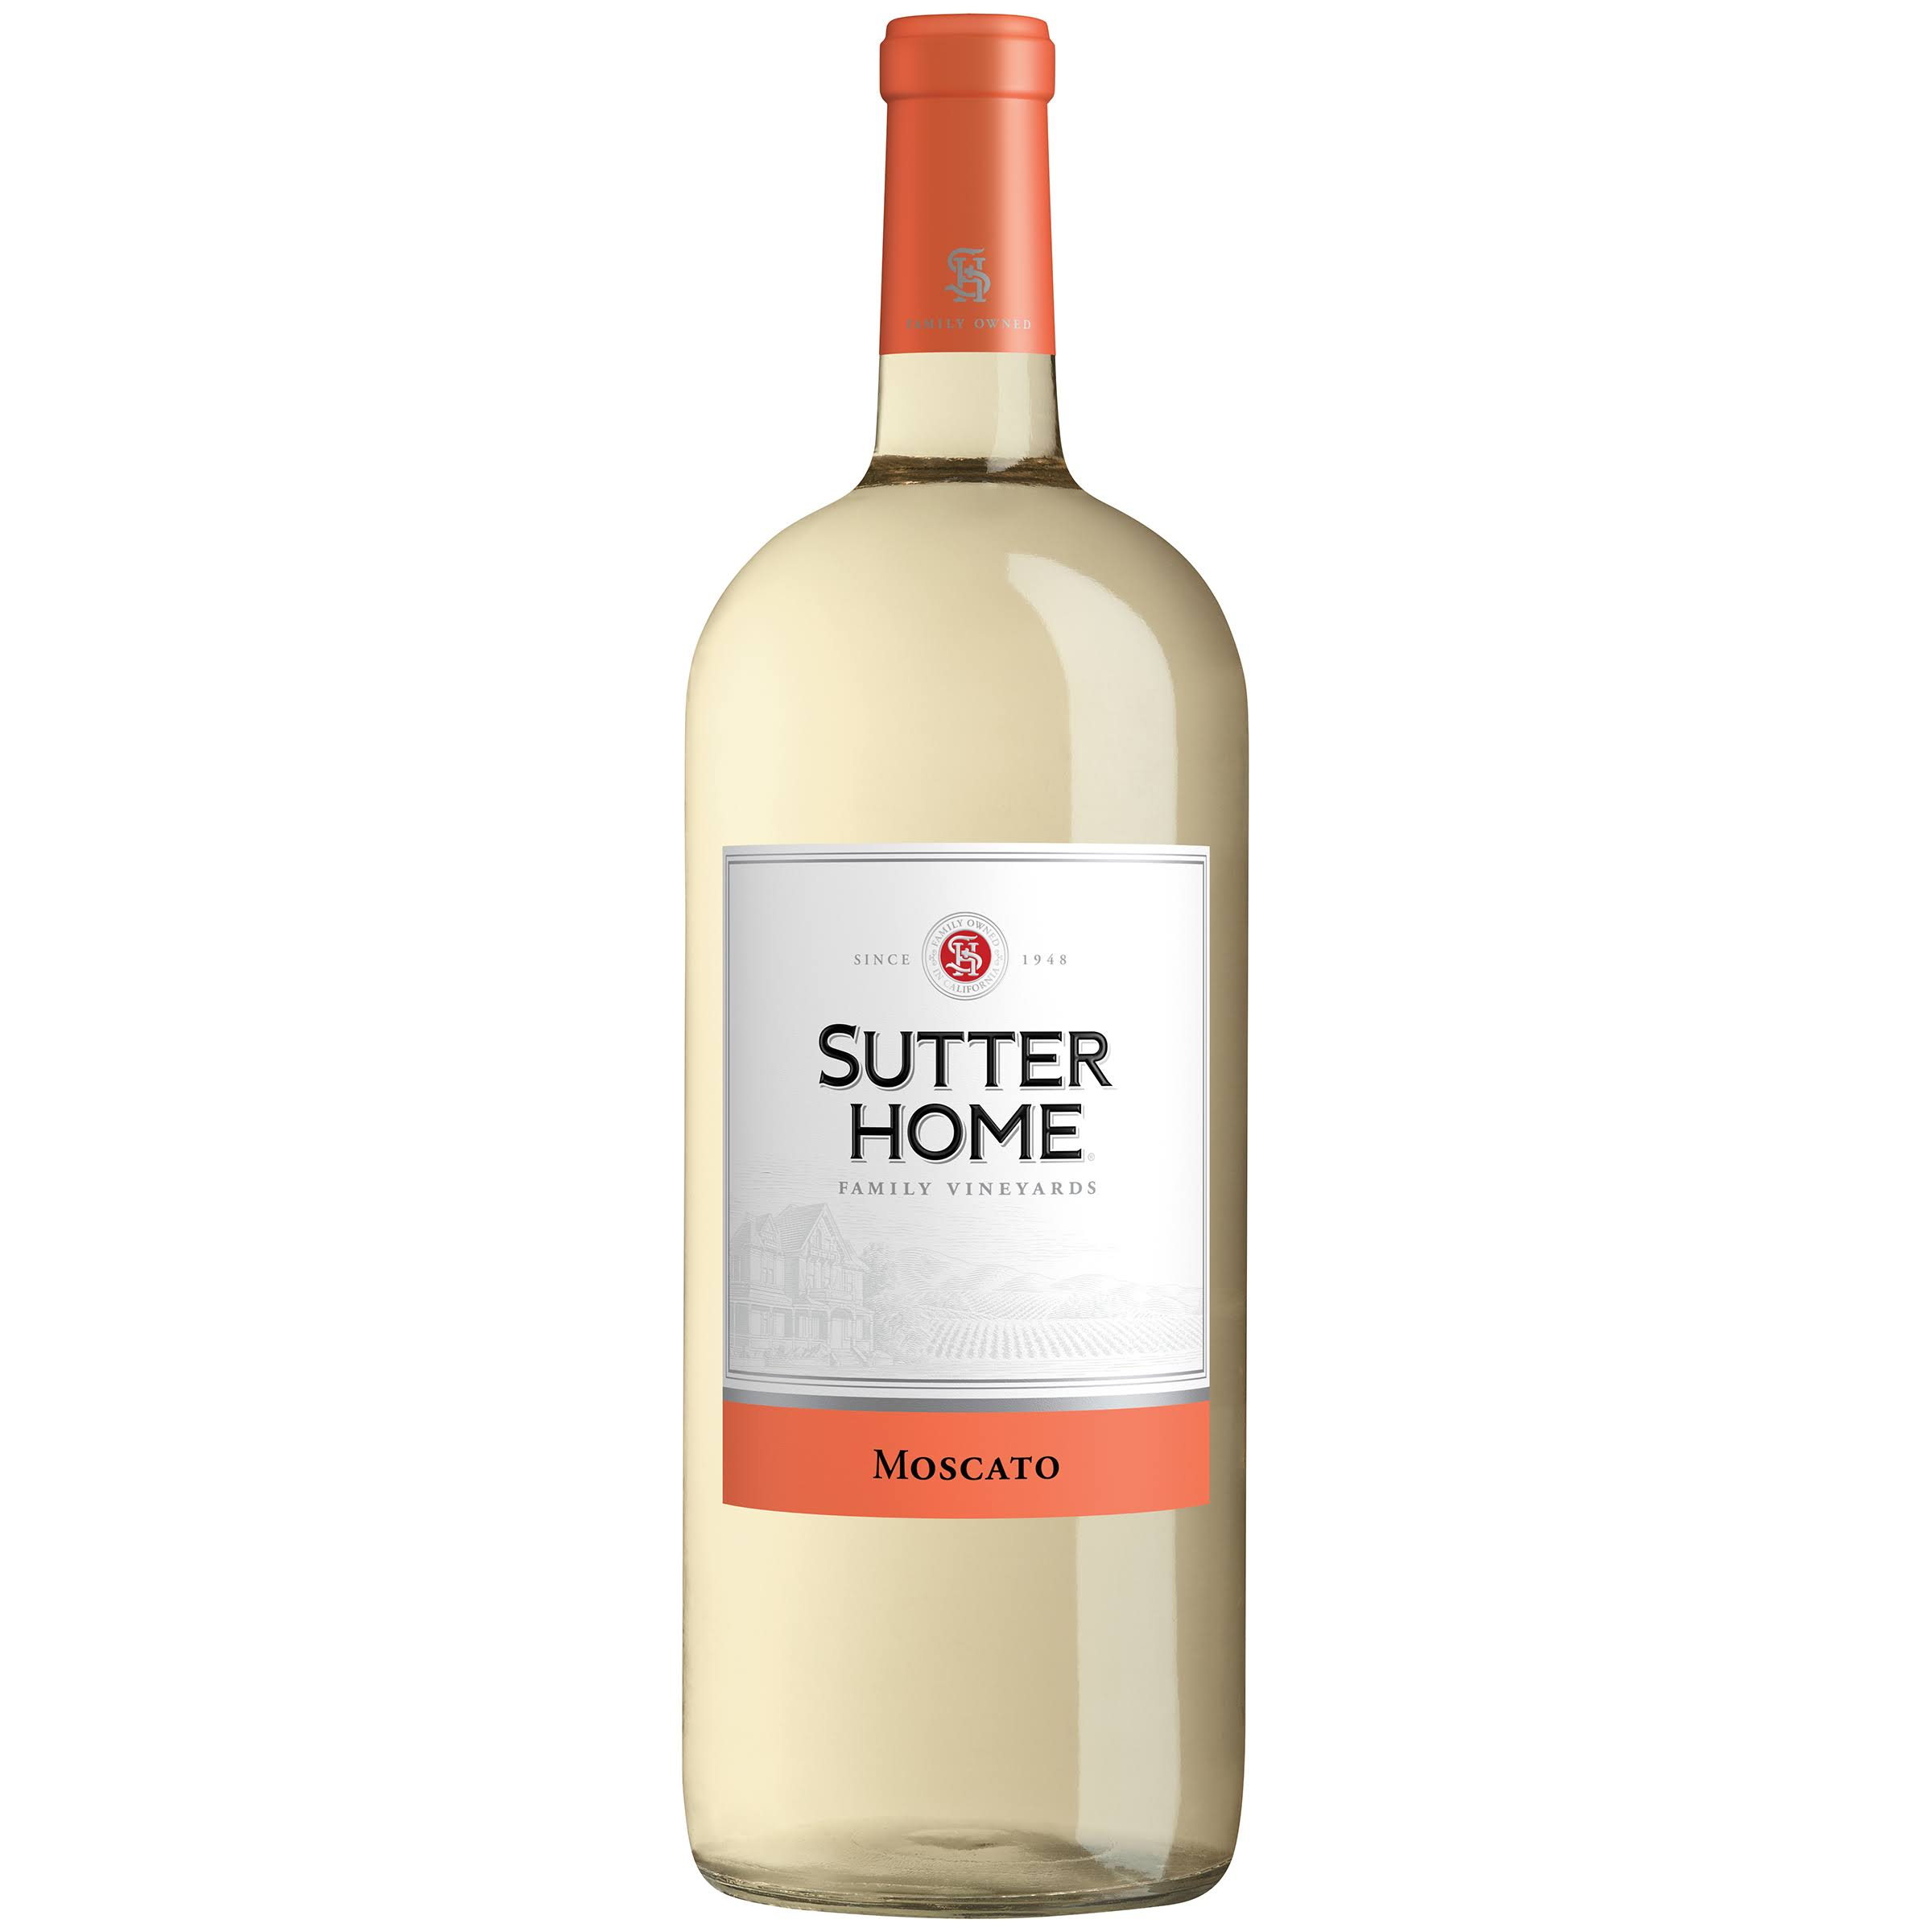 Sutter Home Family Vineyards Moscato, California - 1.5 lt